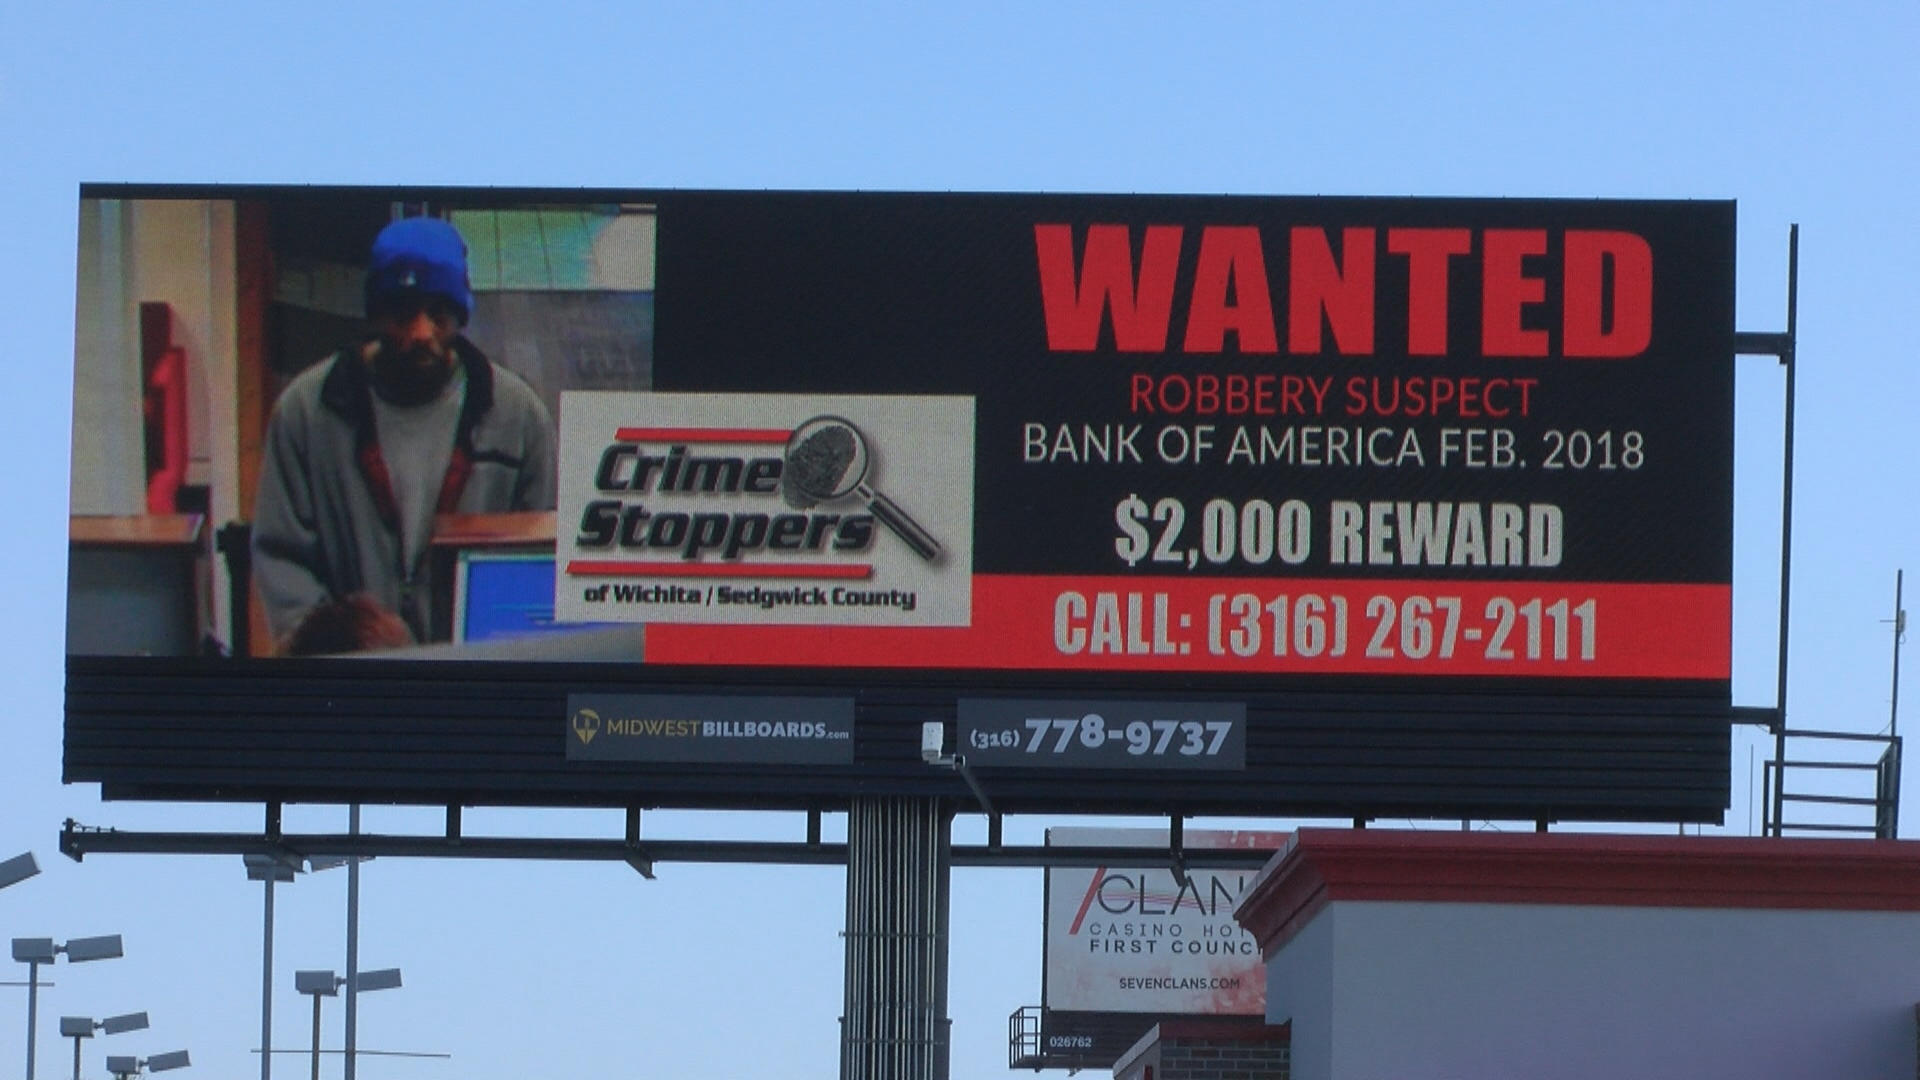 Wanted bank robbery suspects featured on Wichita billboards